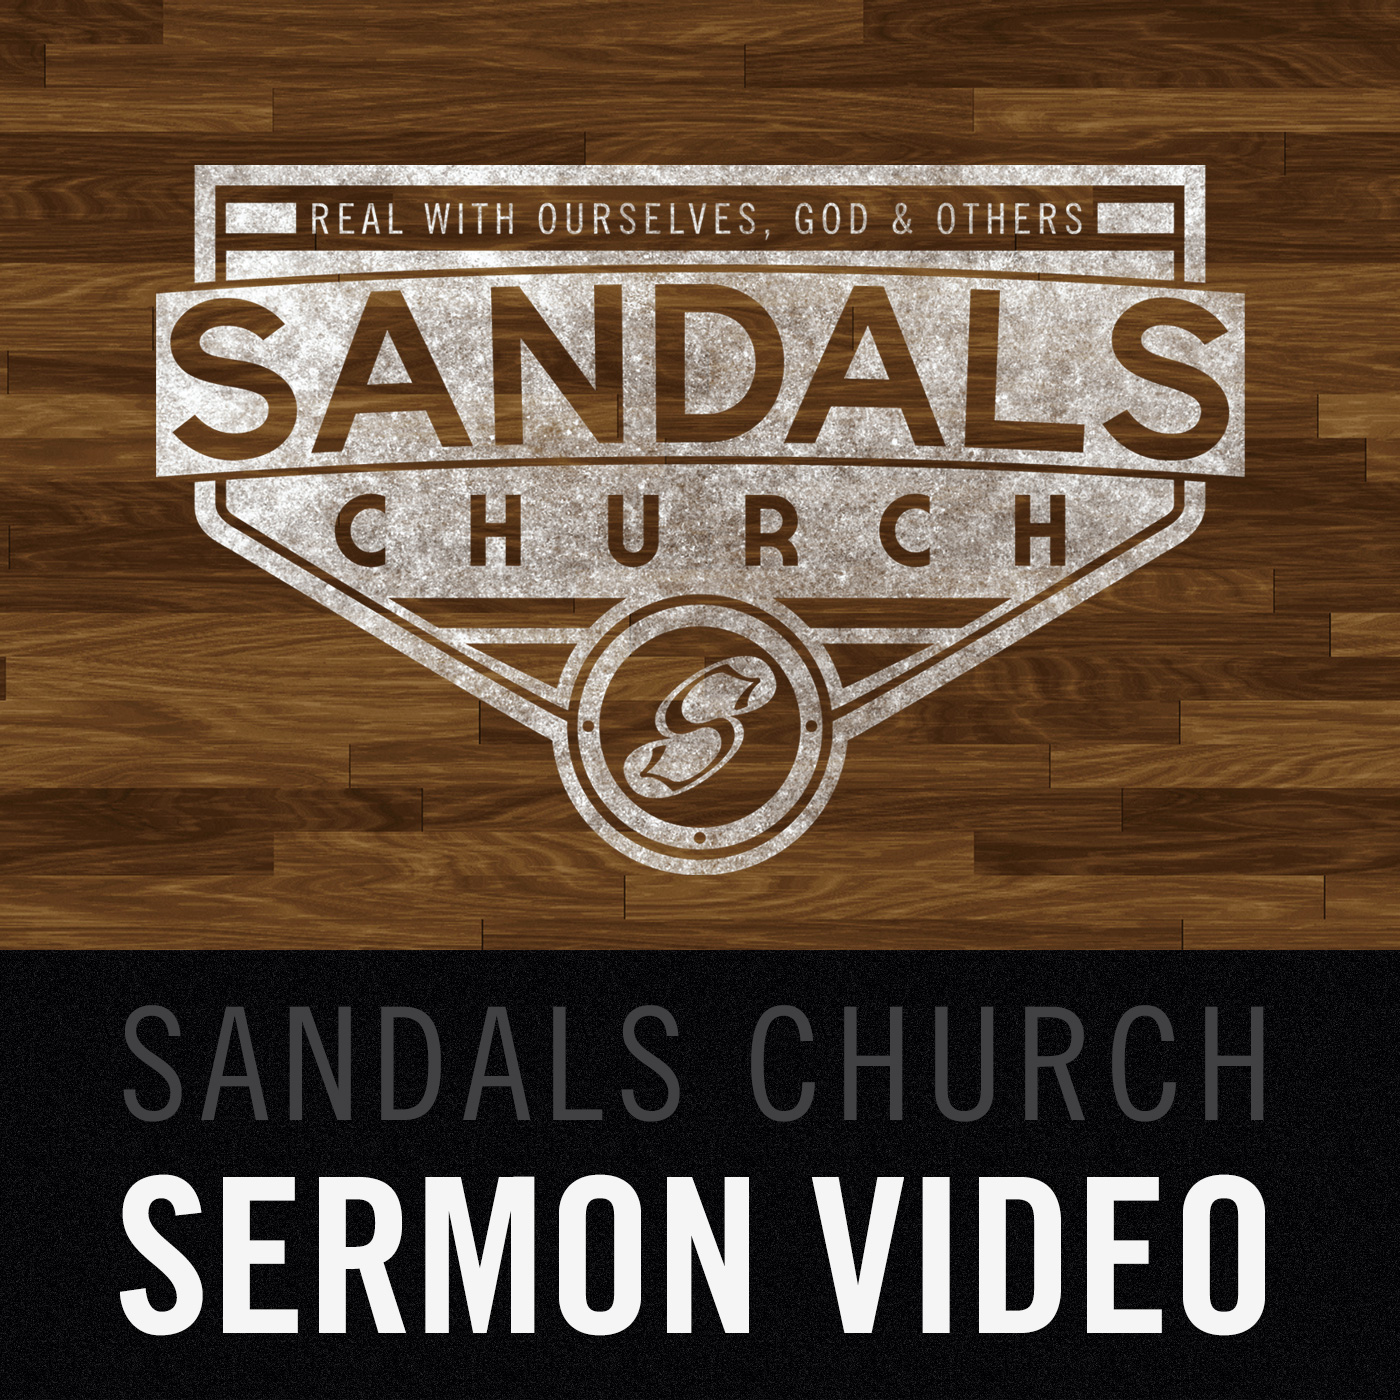 Sandals Church Sermon Video HD